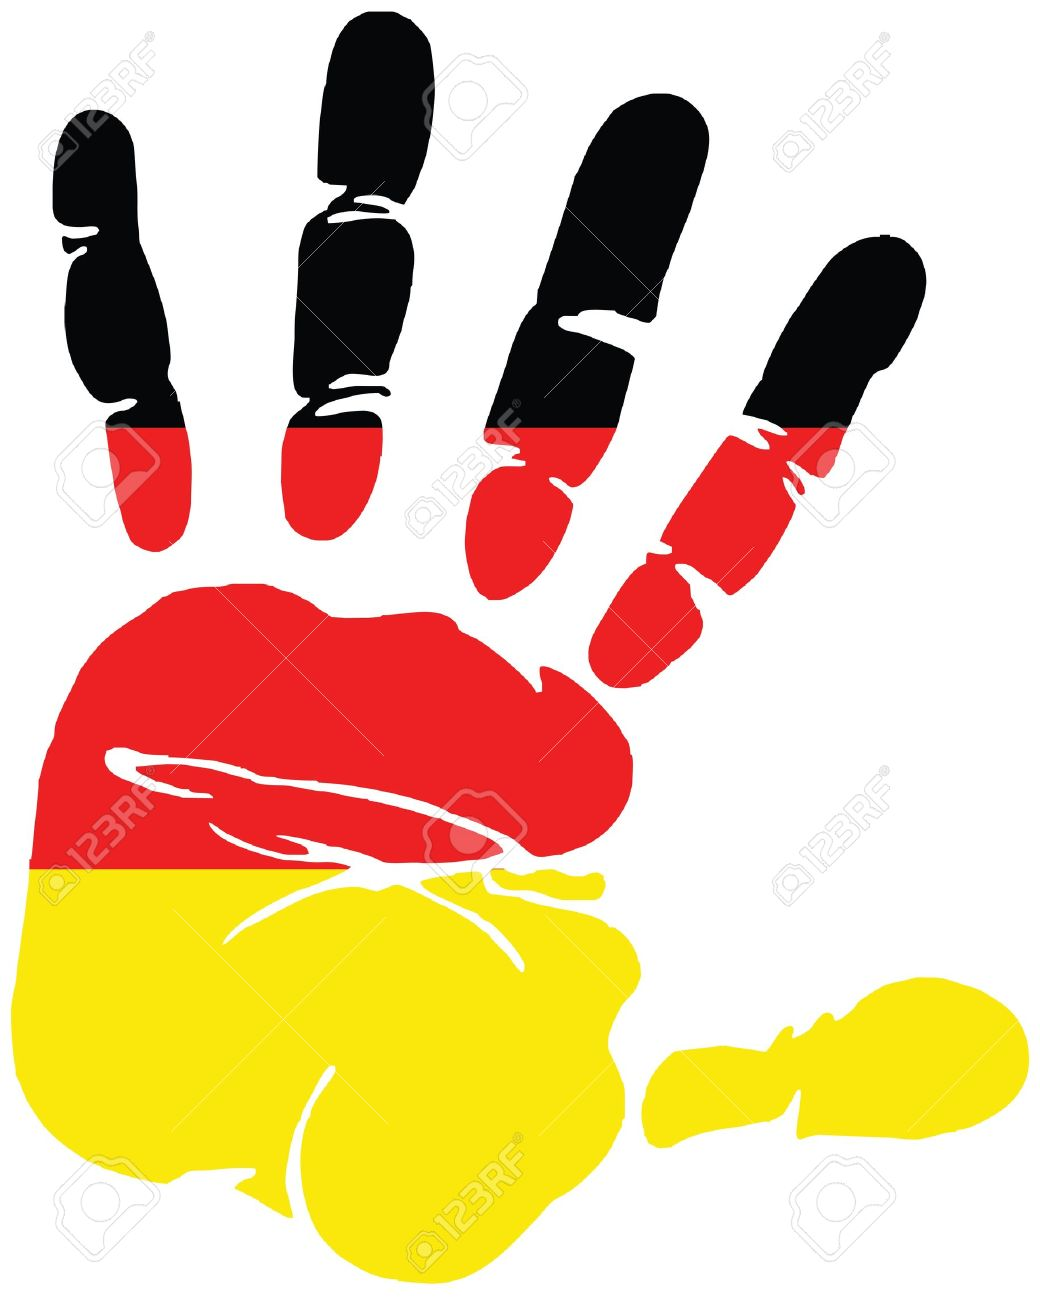 Handprint for Germany with colors of German flag Illustration